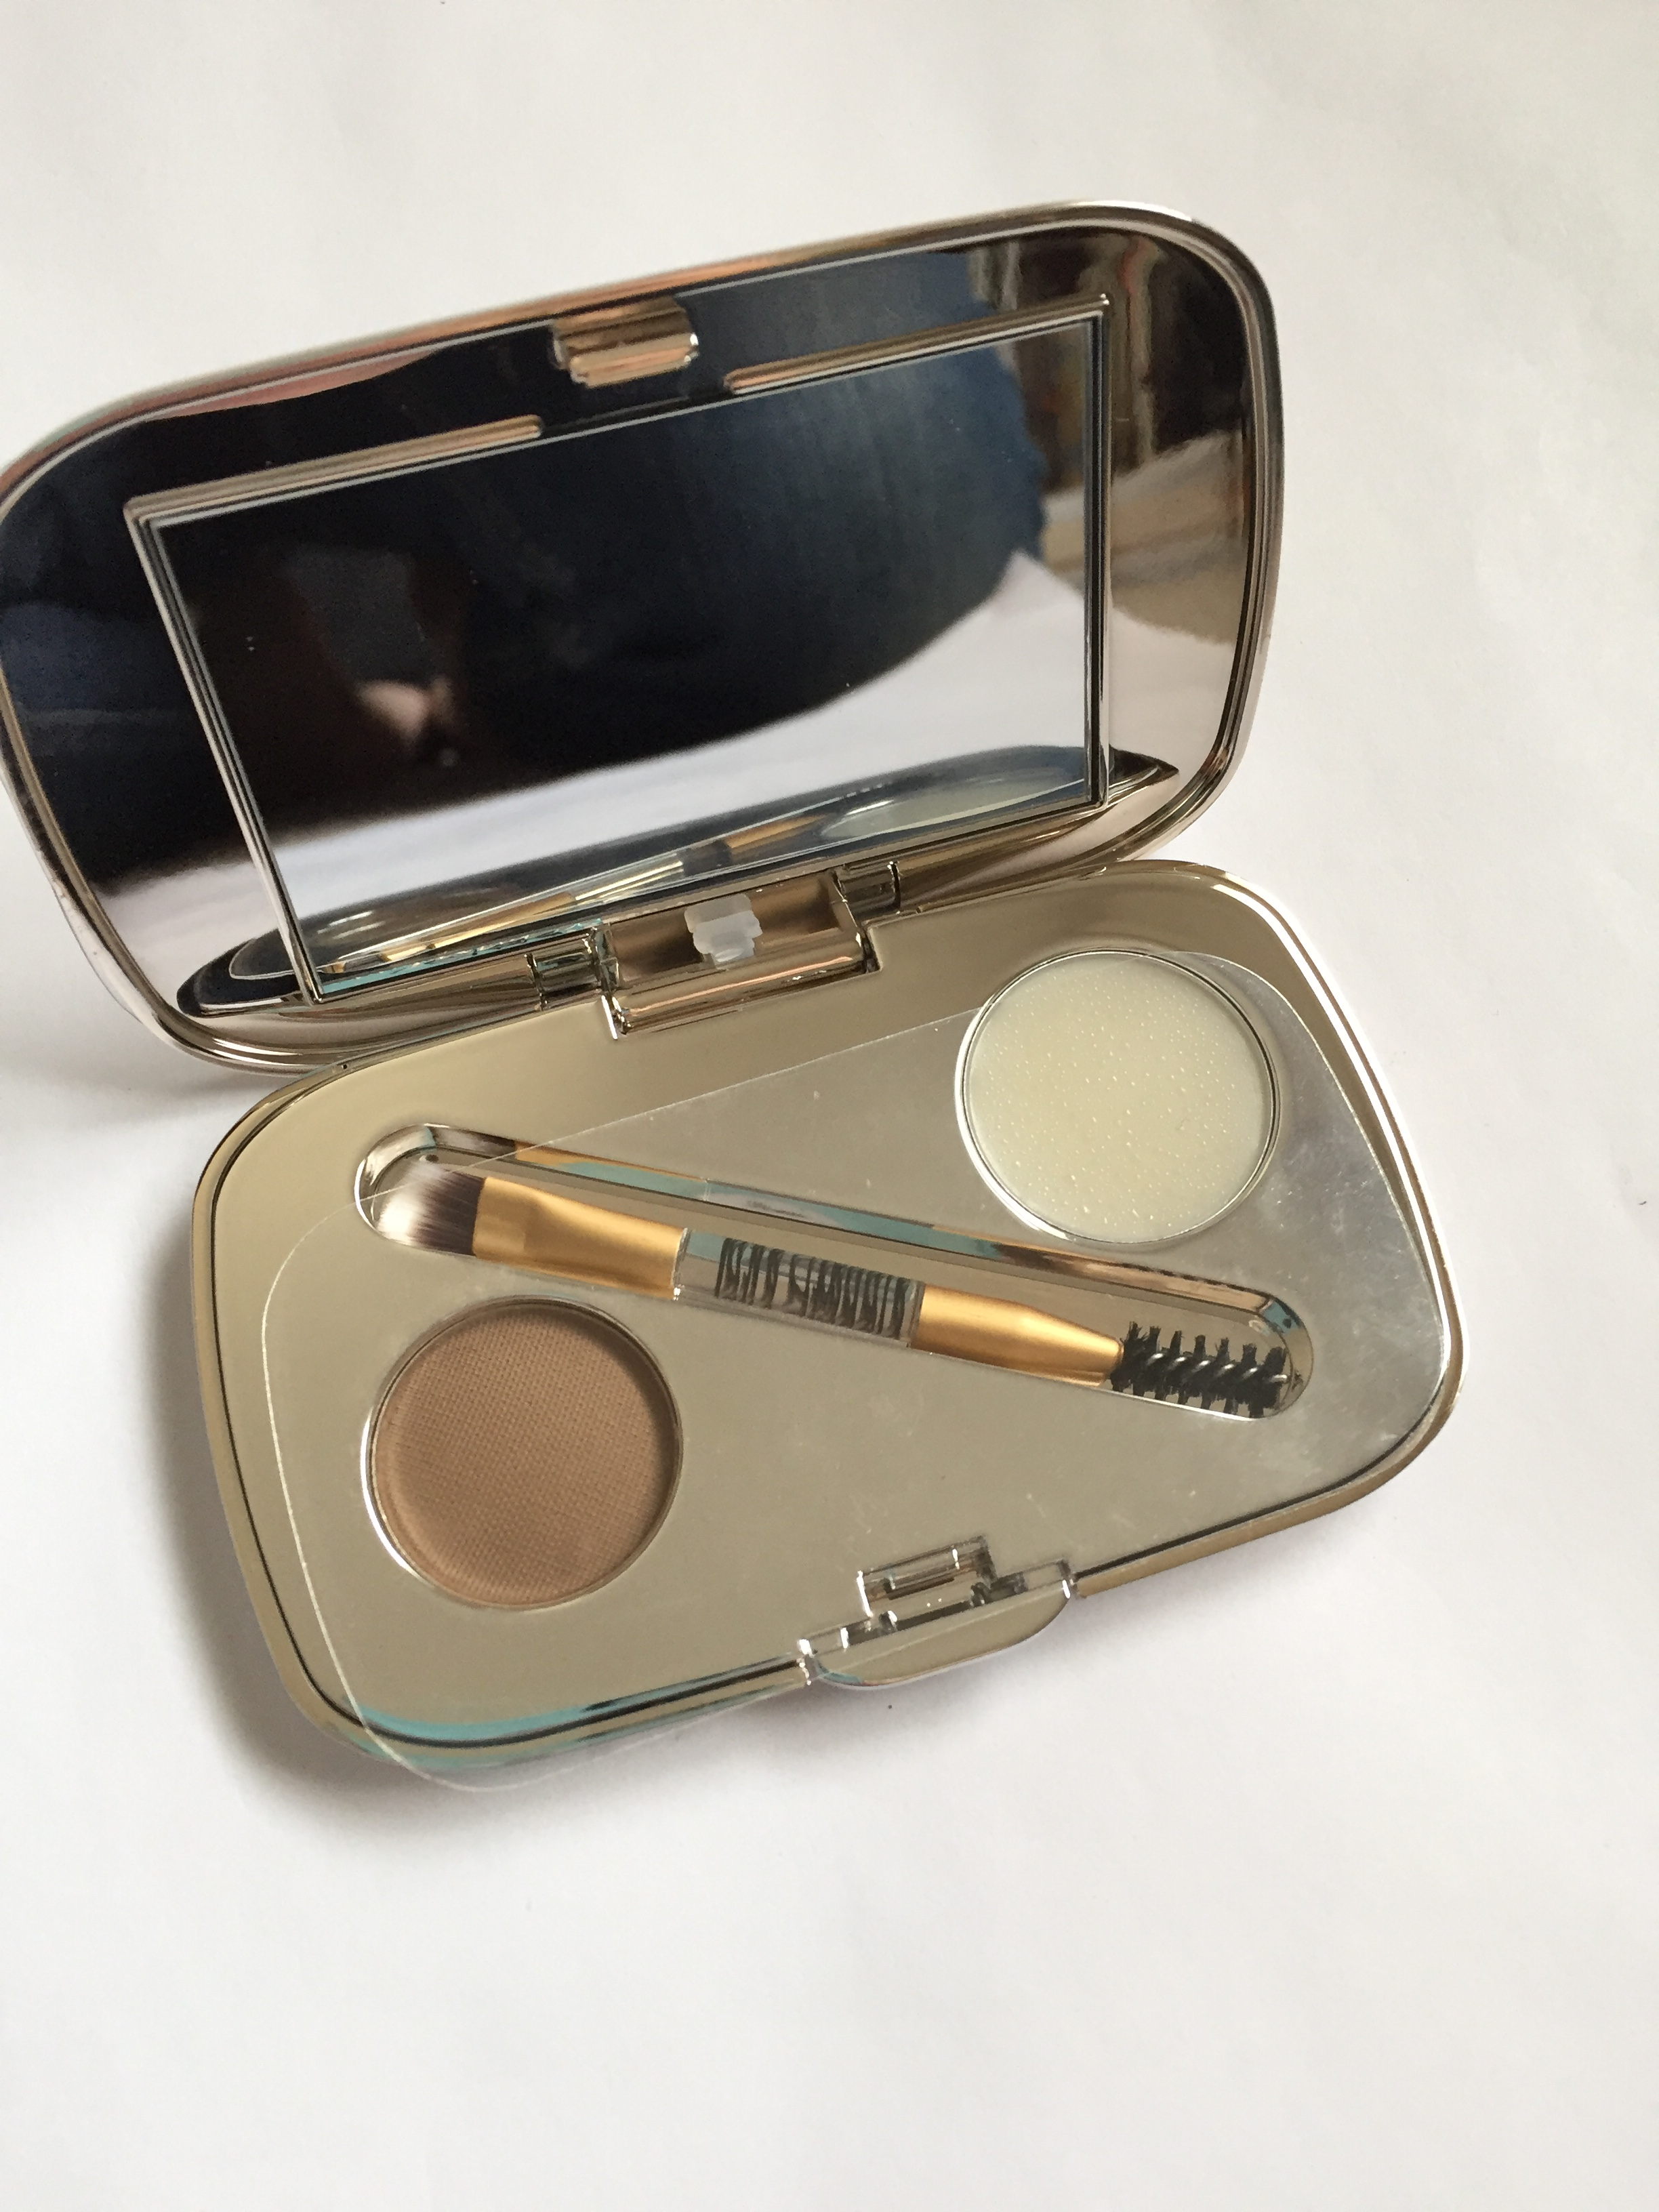 NEW: Jane Iredale Great Shape Eyebrow Kit in Blonde